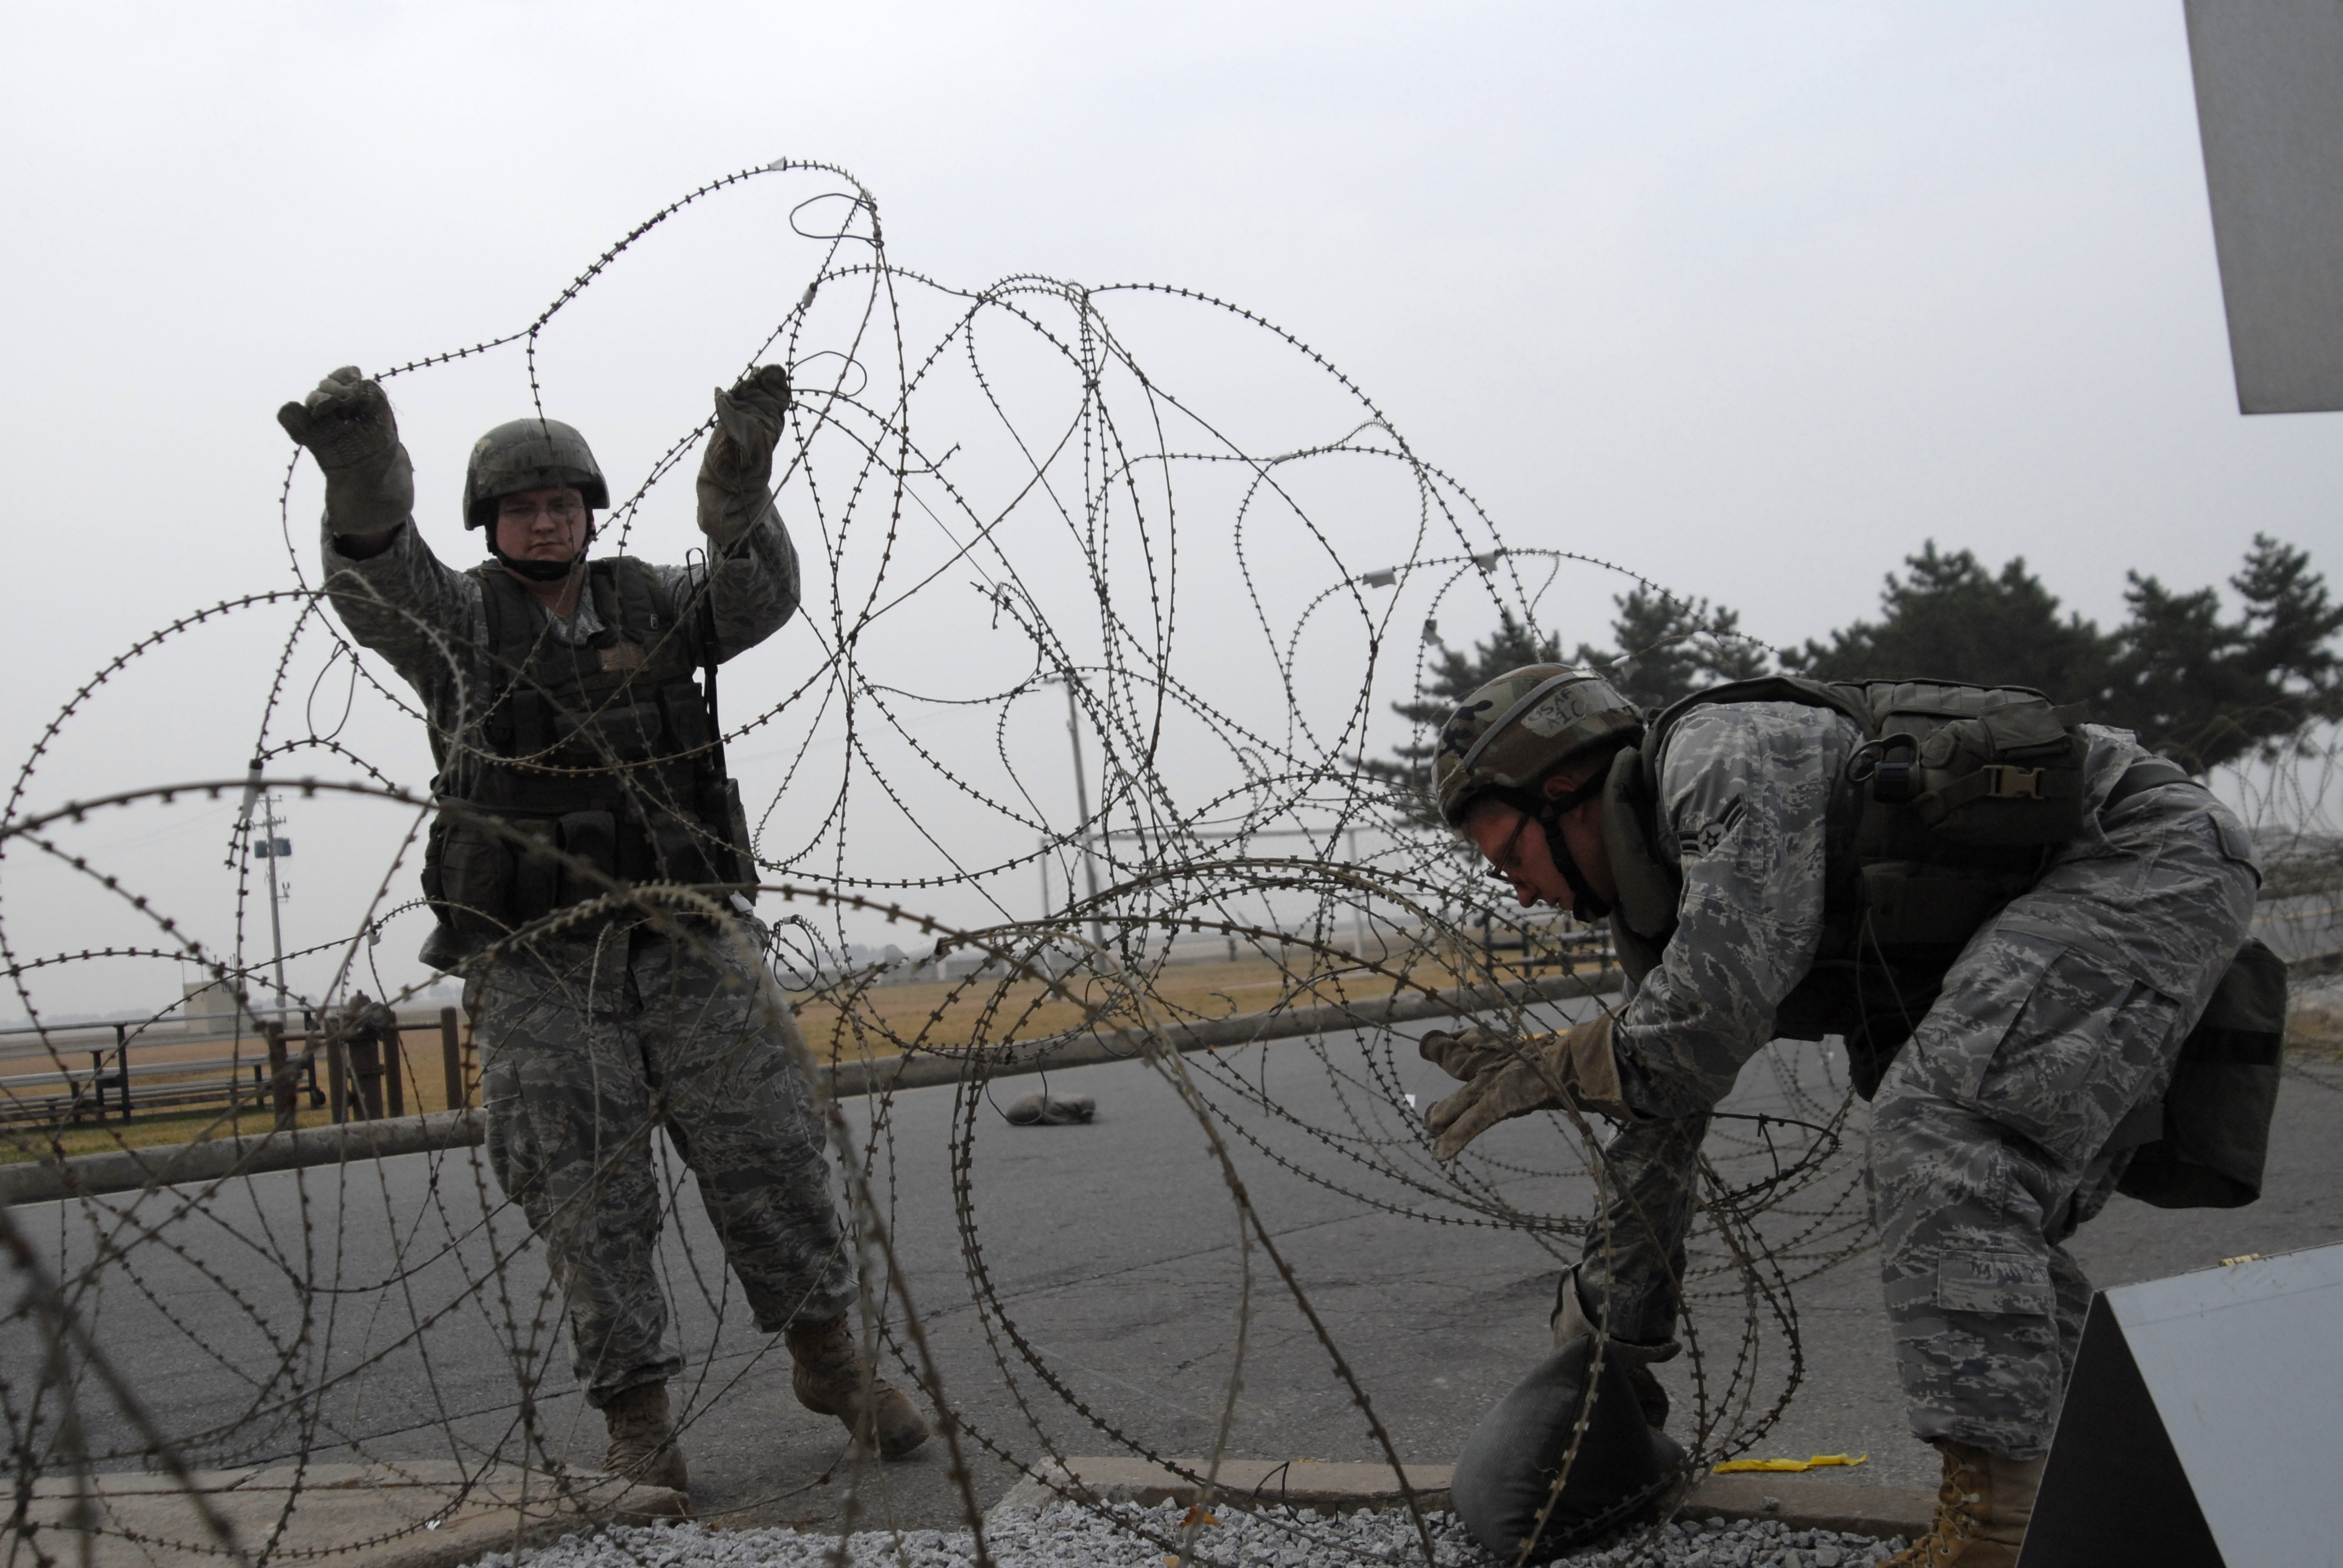 File:American soldier position concertina wire.jpg - Wikimedia Commons